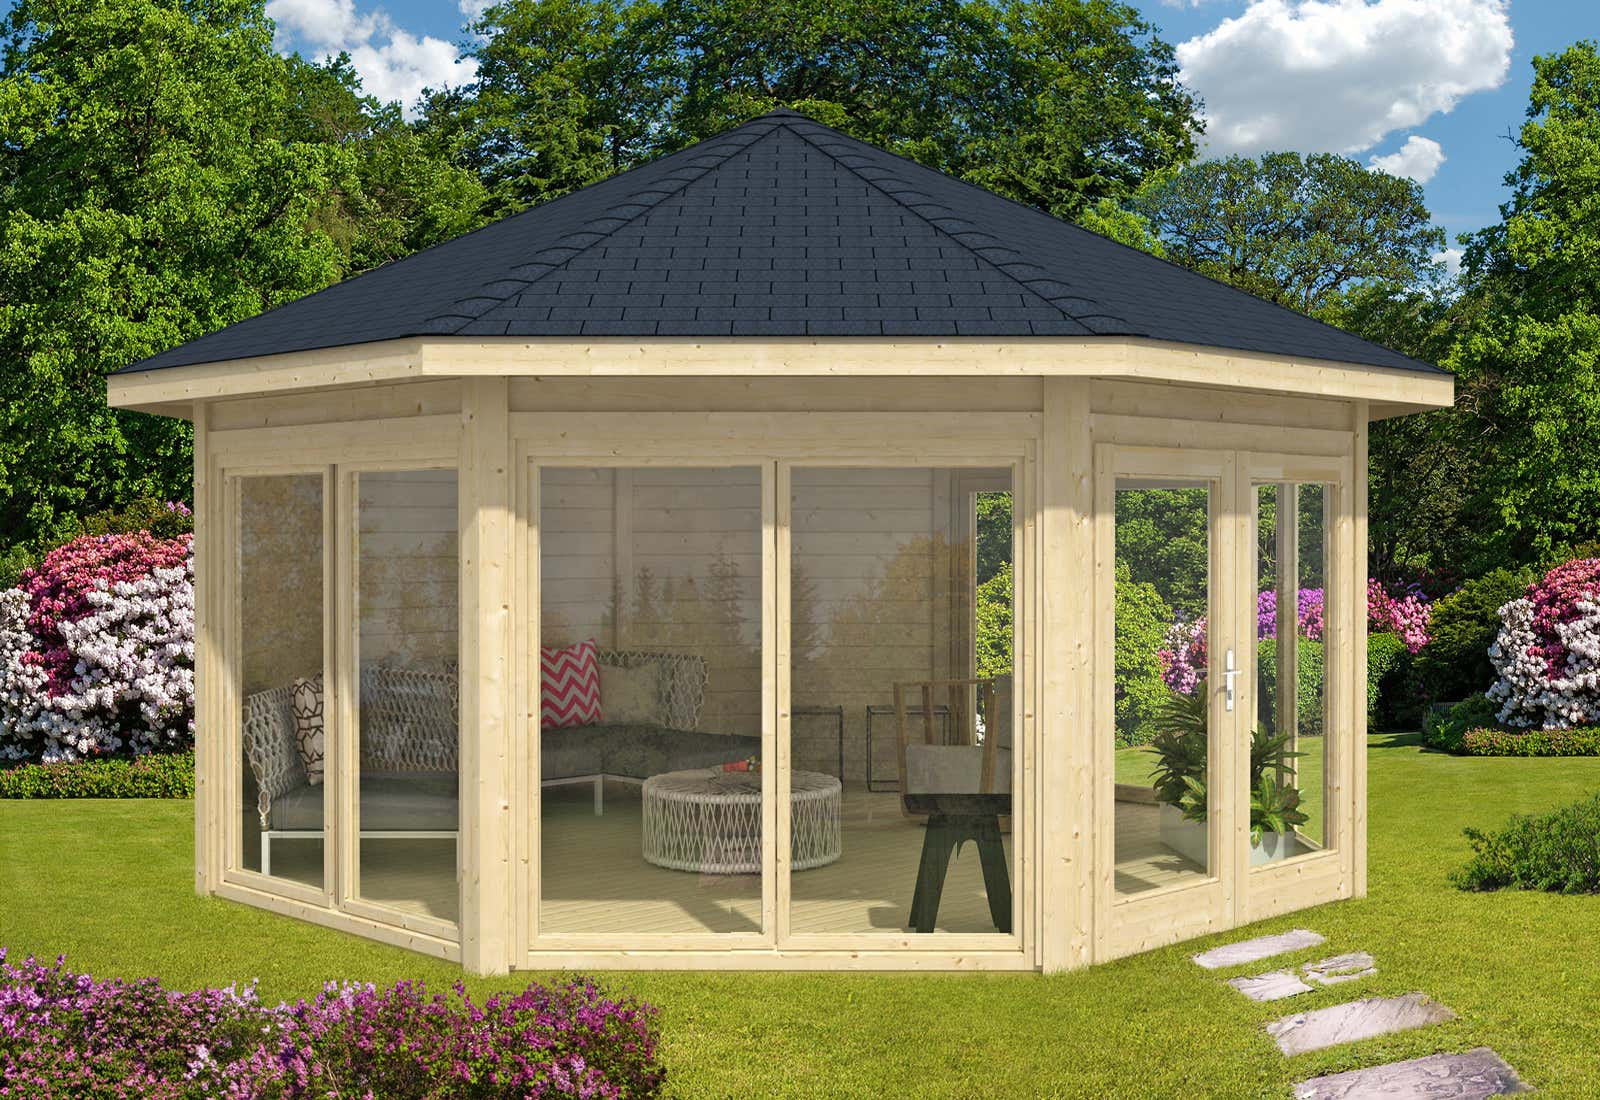 gartenpavillon modell r gen mit vier fenstern a z gartenhaus gmbh. Black Bedroom Furniture Sets. Home Design Ideas